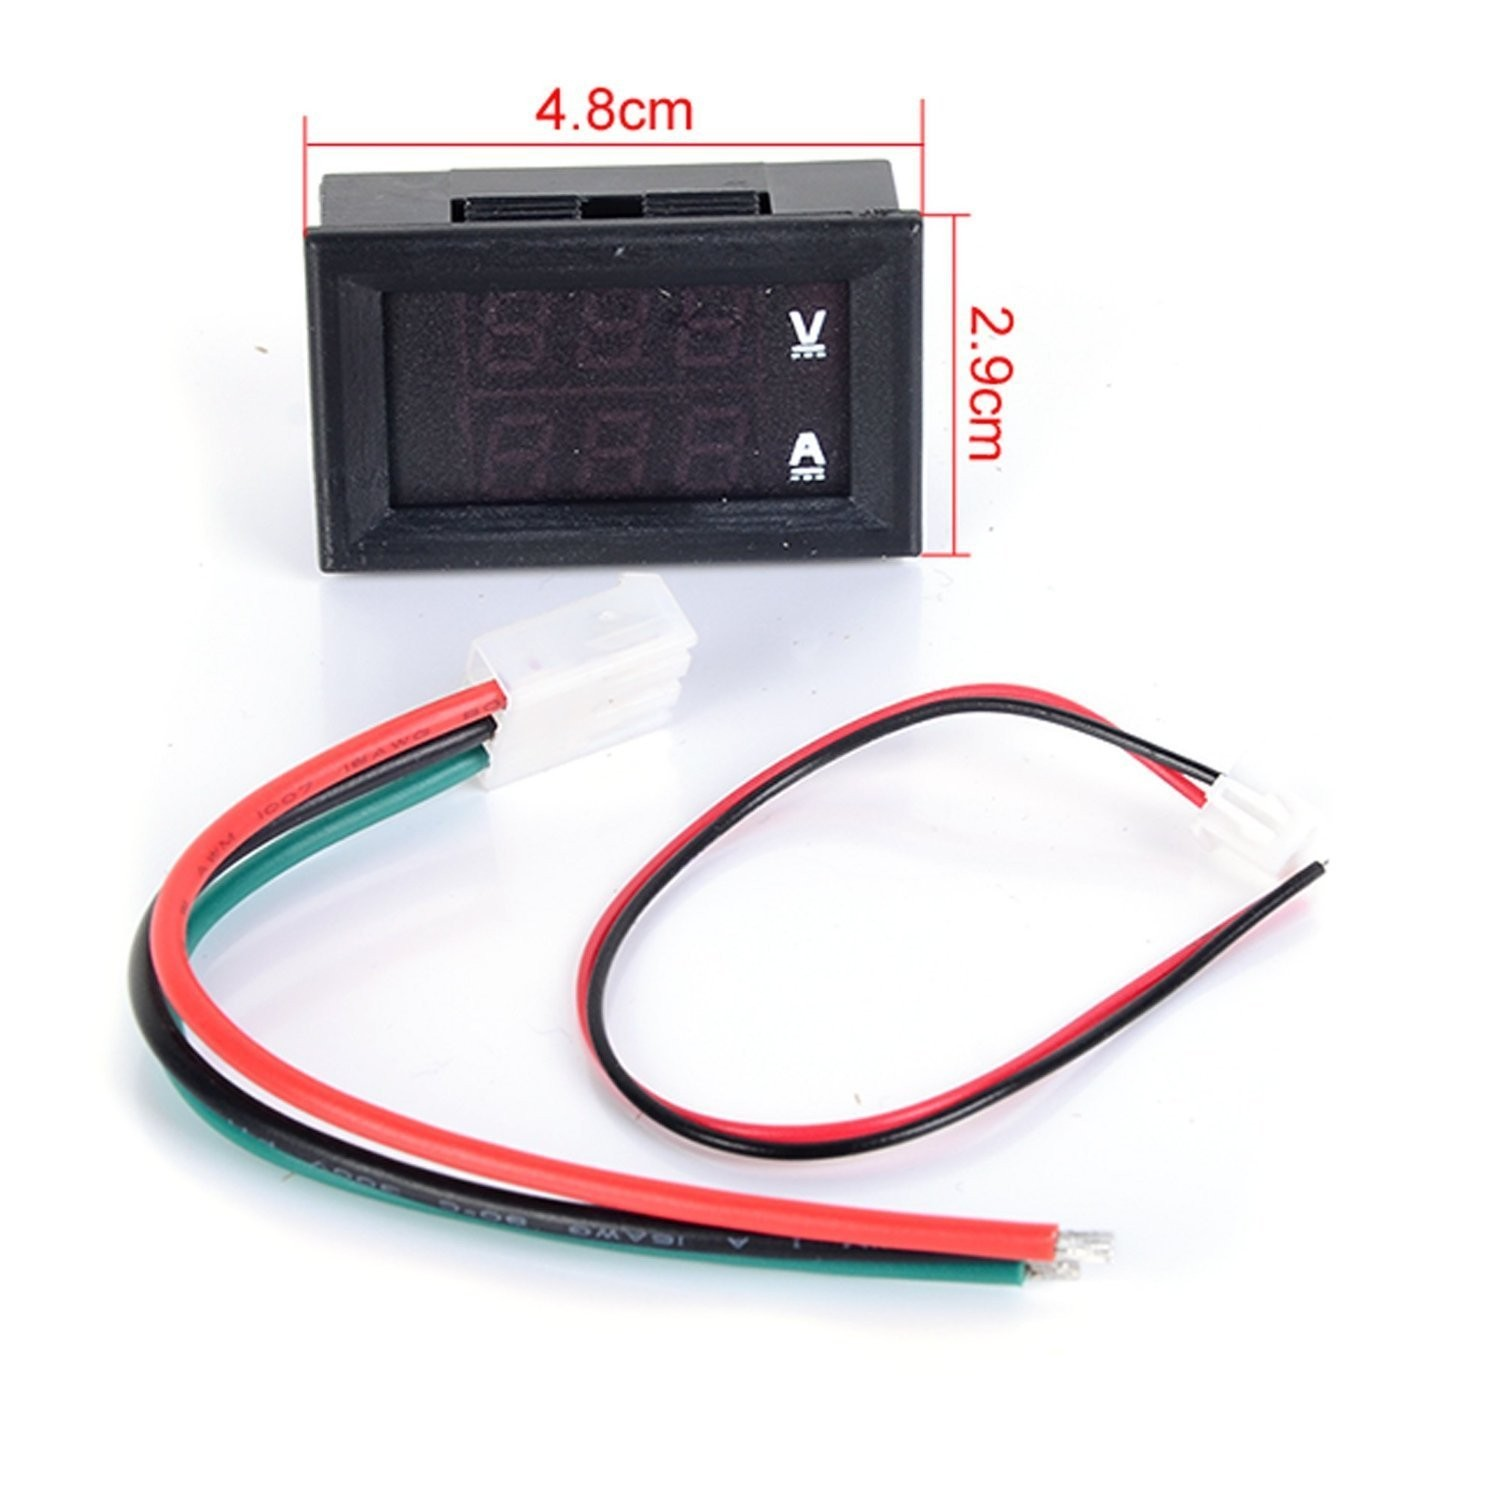 Riorand Dc Volt Amp Meter 2in1 Digital Amperemeter Voltmeter Led Wiring In Car Lightbox Moreview